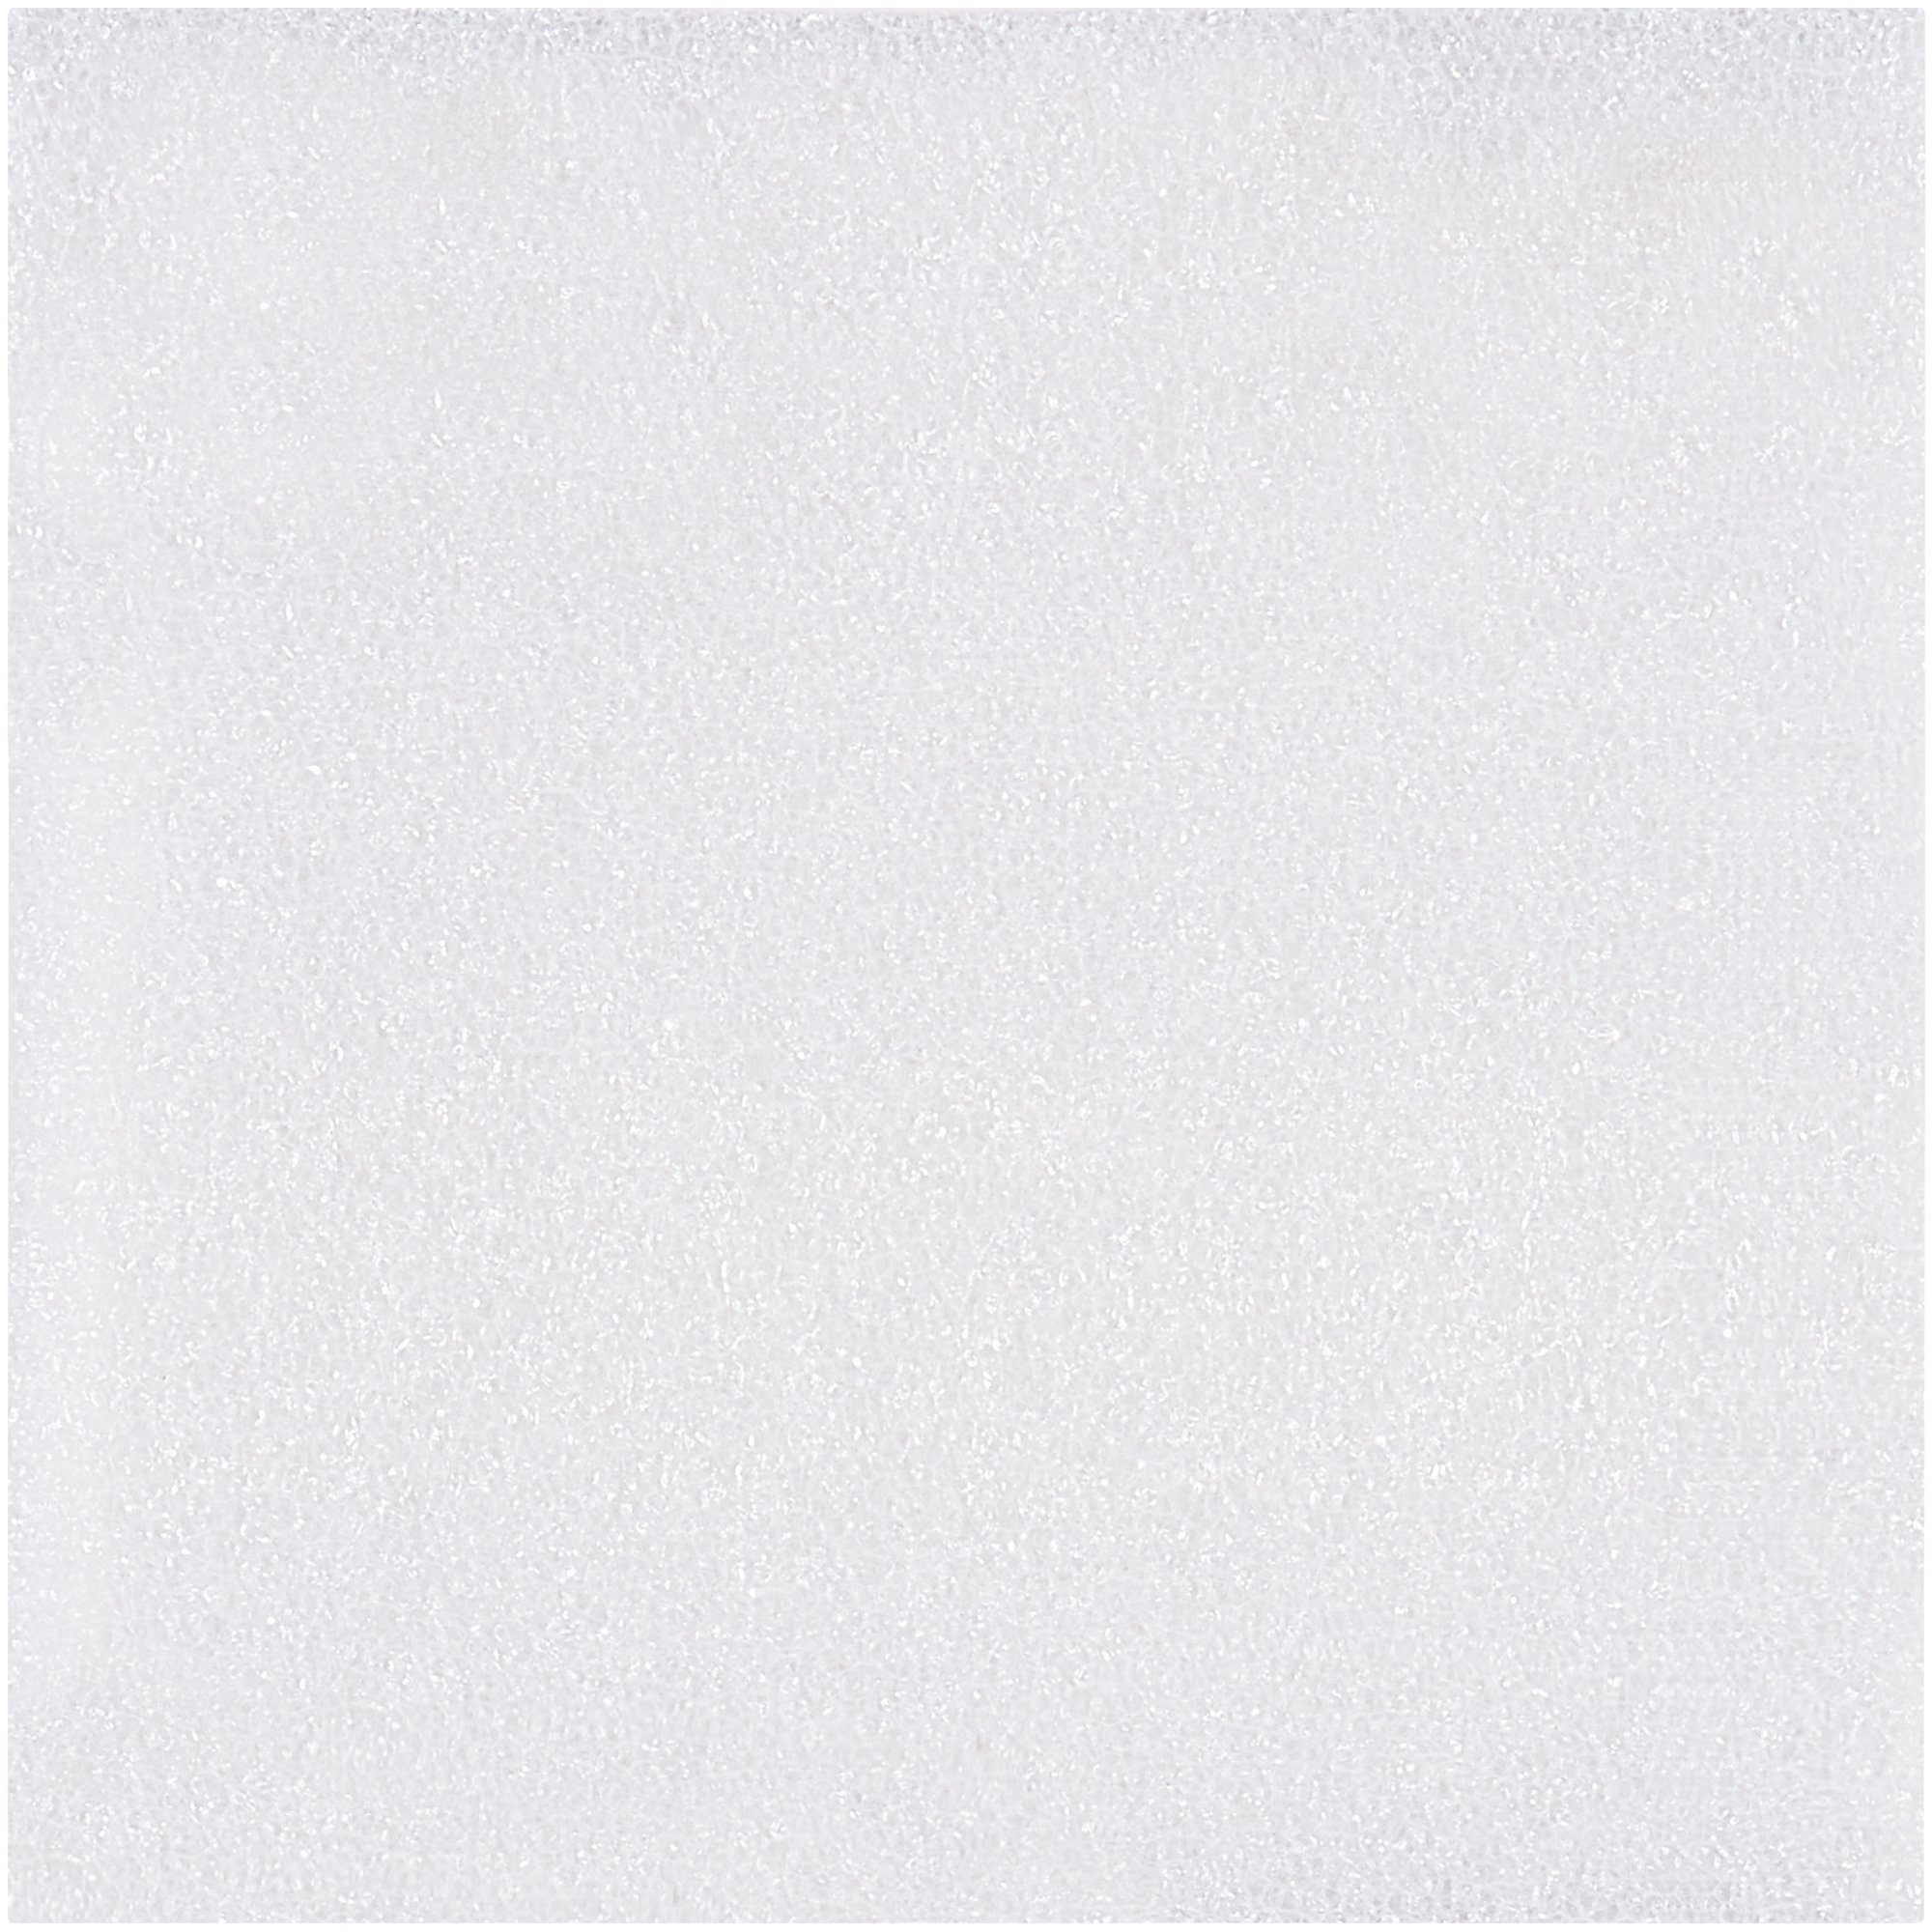 Ship Now Supply SNFS0404 Air Foam Sheets, 4'' x 4'', Width, 0.125'' Height, 4'' Length, White (Pack of 3200)